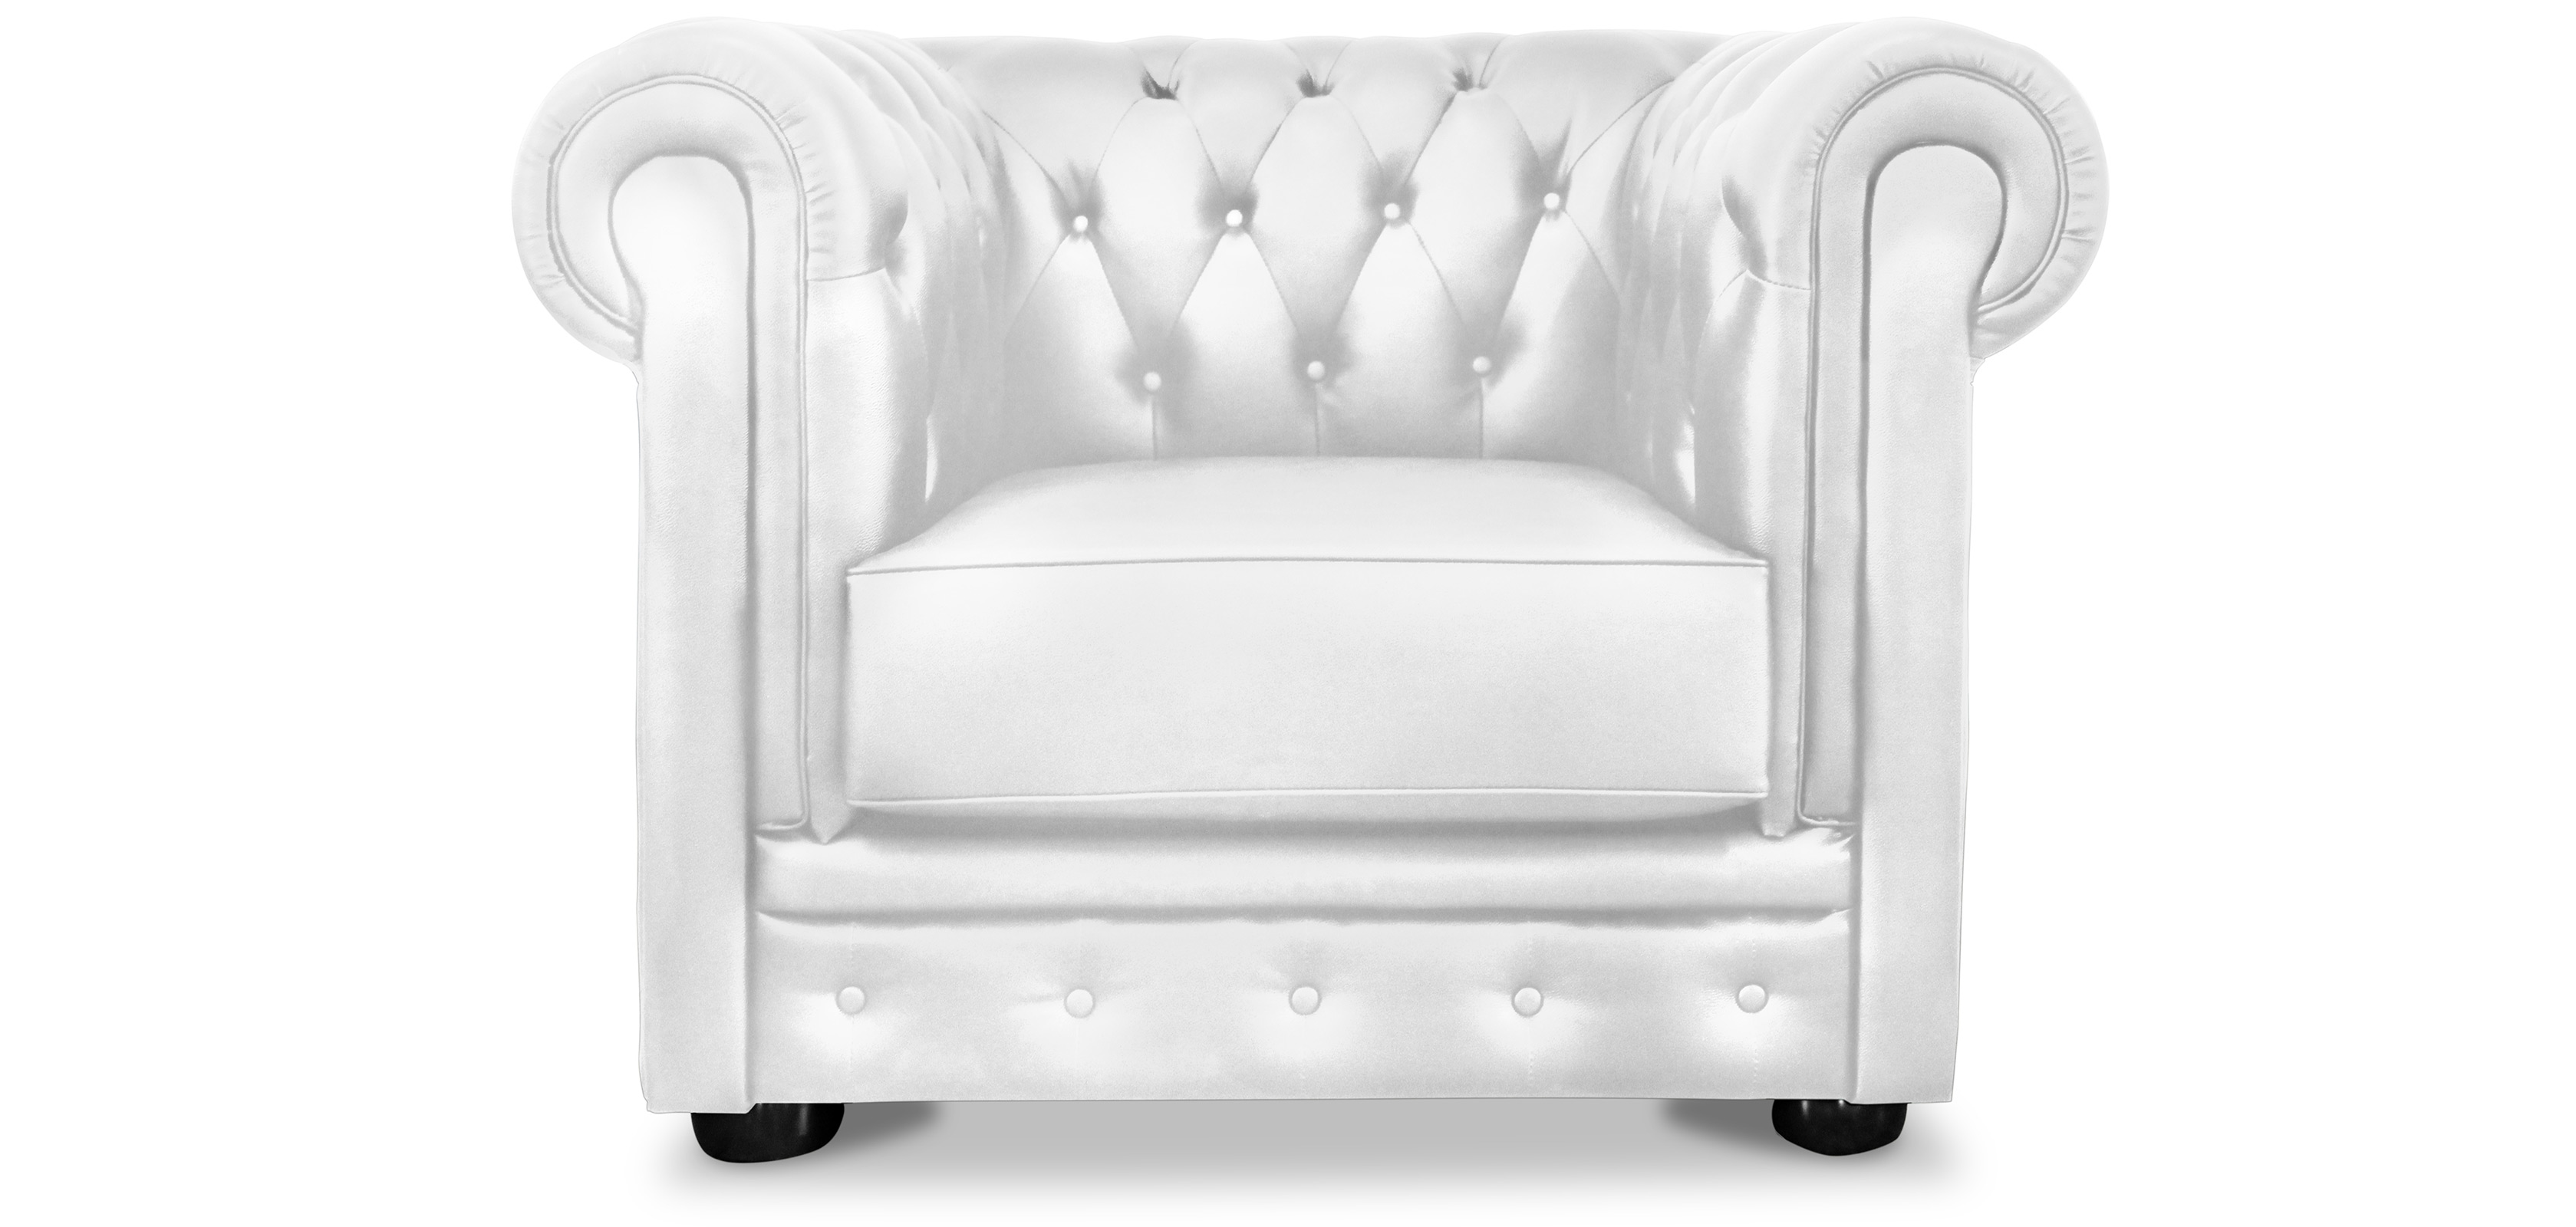 Chesterfield Sessel Weiss Pearly Chesterfield Sessel Hochwertiges Leder